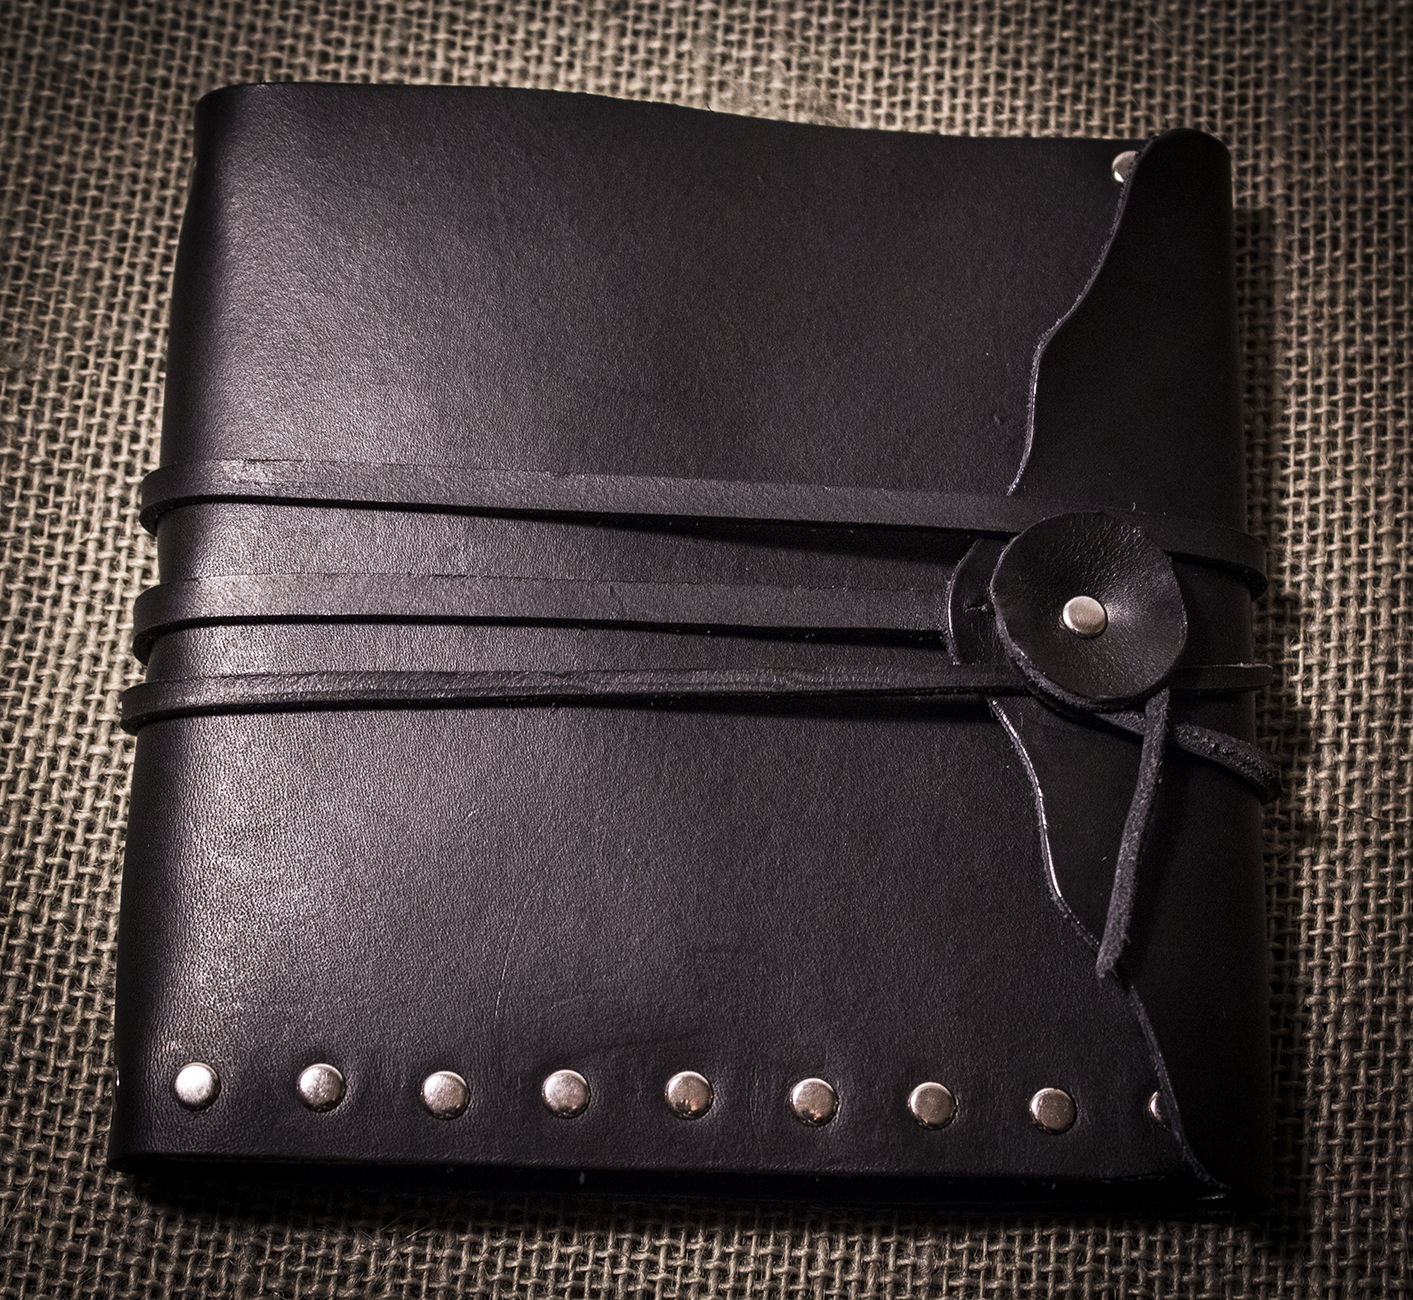 Ministry of Truth album - Limited Edition Leather Journal CD + digital download bundle - The State